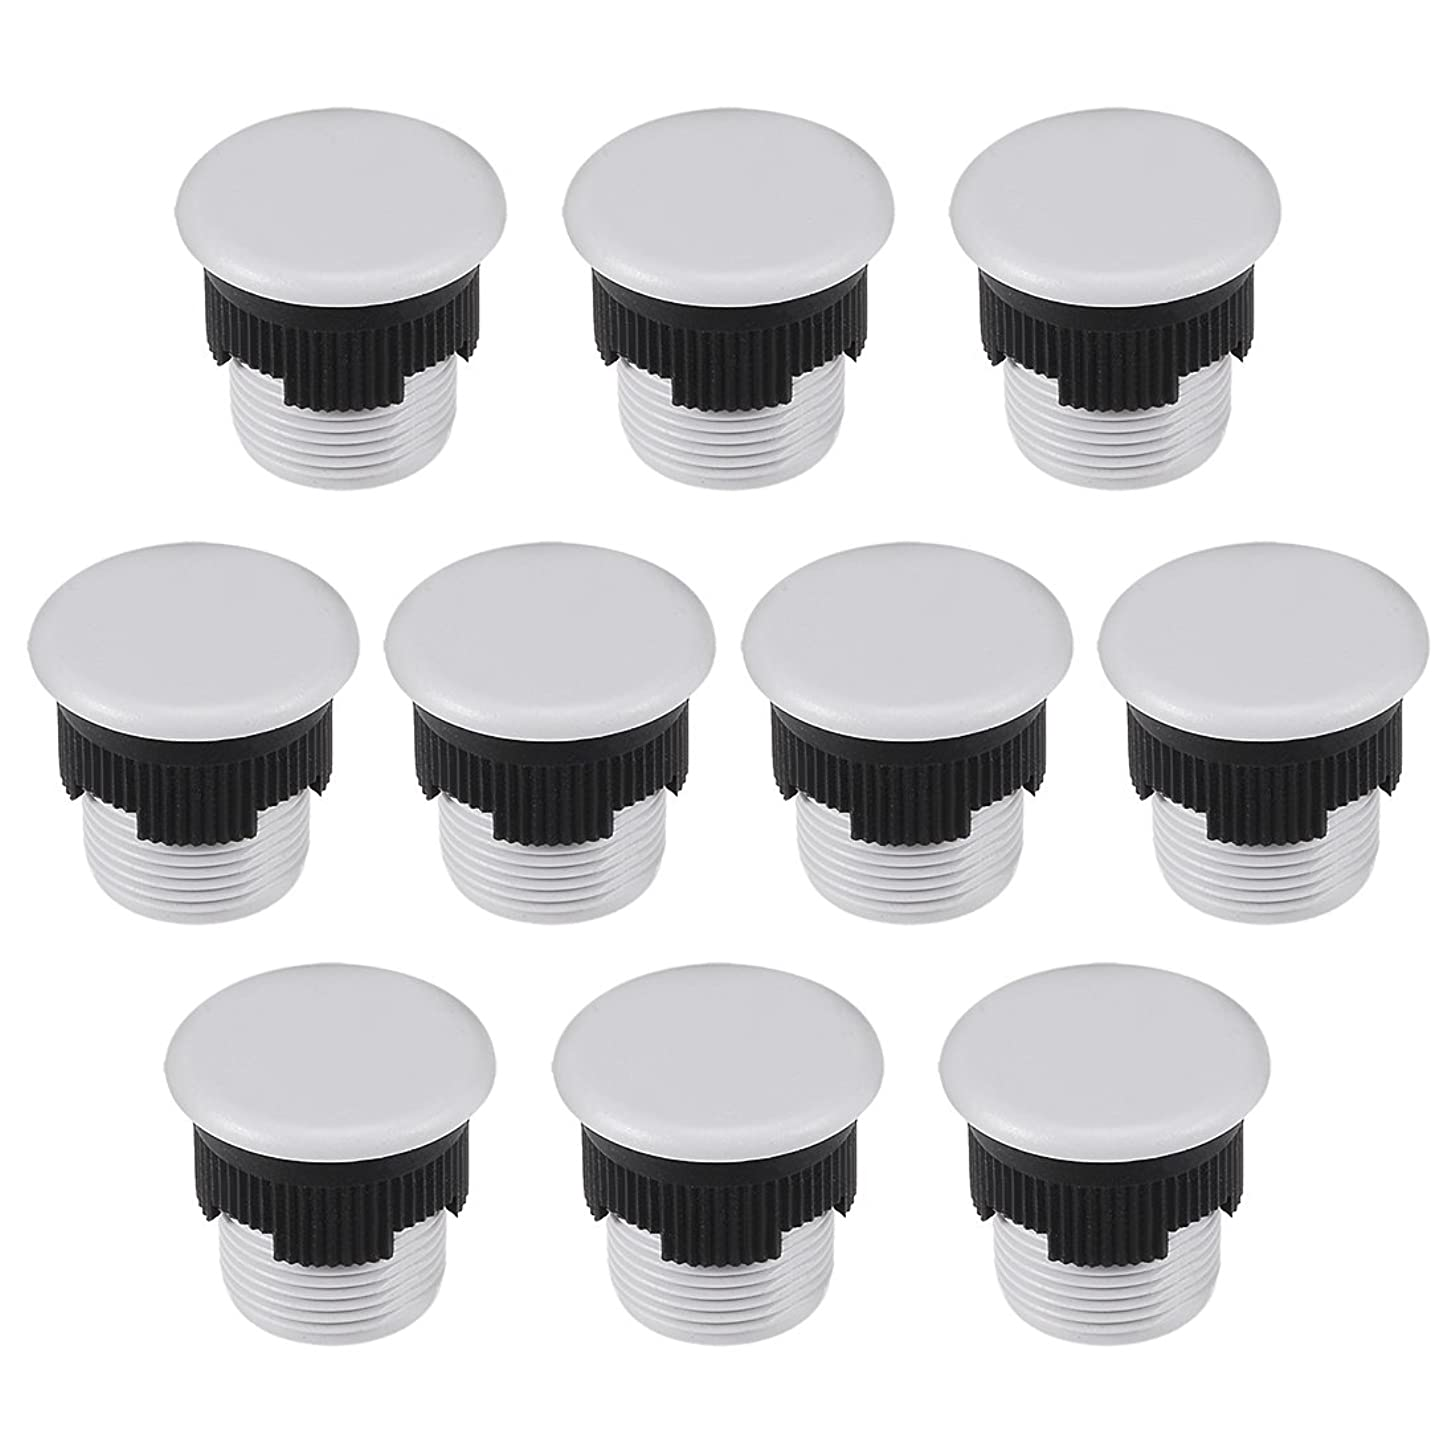 uxcell 10 Pcs 16mm Black Gray Plastic Push Button Switch Hole Panel Plug